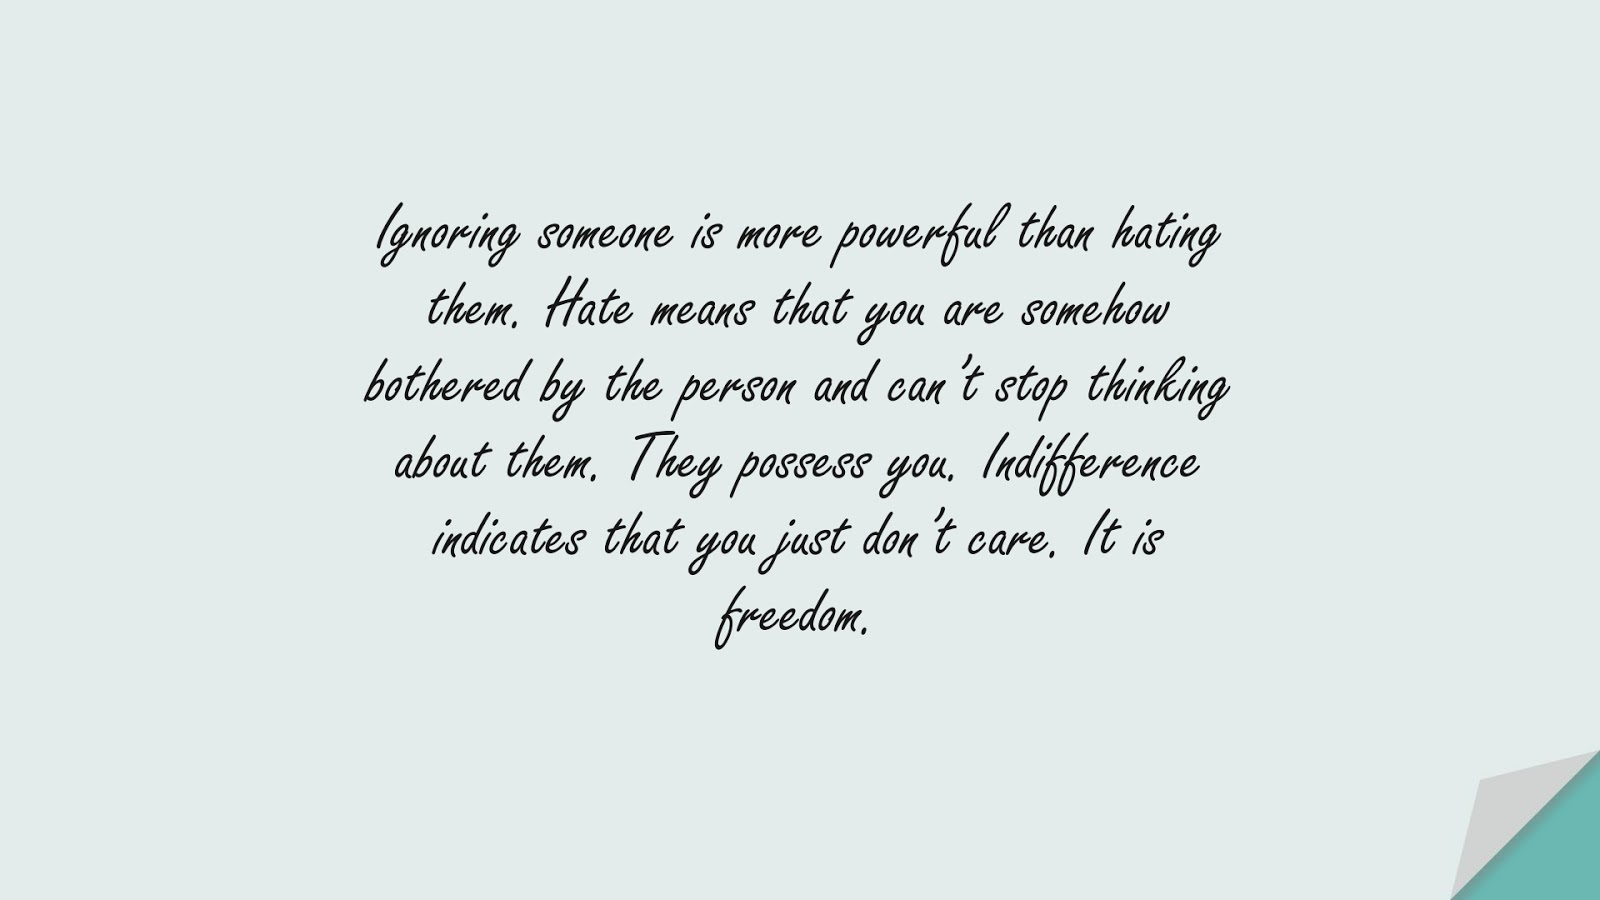 Ignoring someone is more powerful than hating them. Hate means that you are somehow bothered by the person and can't stop thinking about them. They possess you. Indifference indicates that you just don't care. It is freedom.FALSE